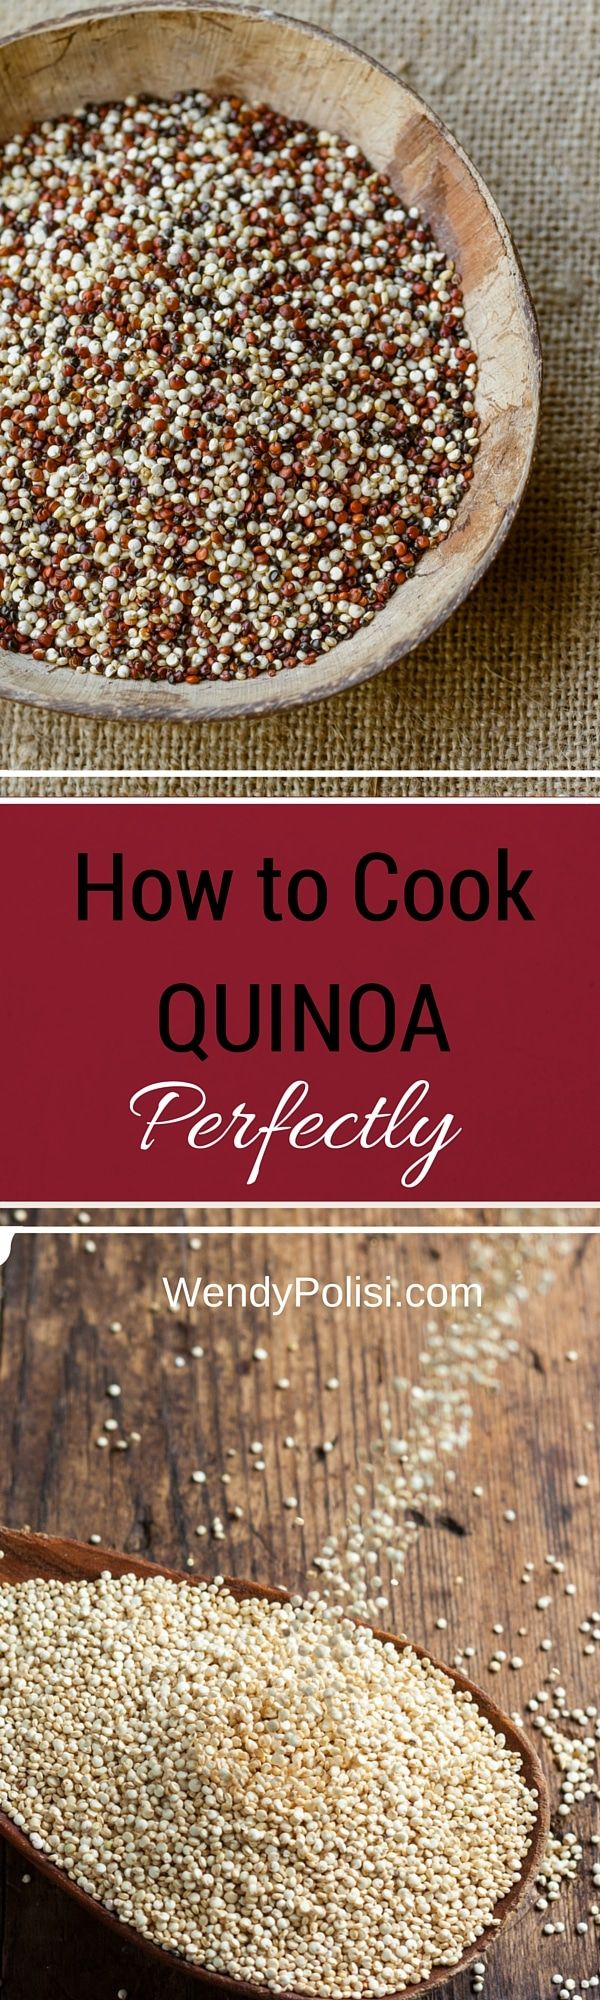 How to Cook Quinoa Perfectly - After more than 600 quinoa recipes, I've learn a thing or two about how to cook quinoa perfectly! Here are my best tips for cooking quinoa perfectly every time. via @wendypolisi